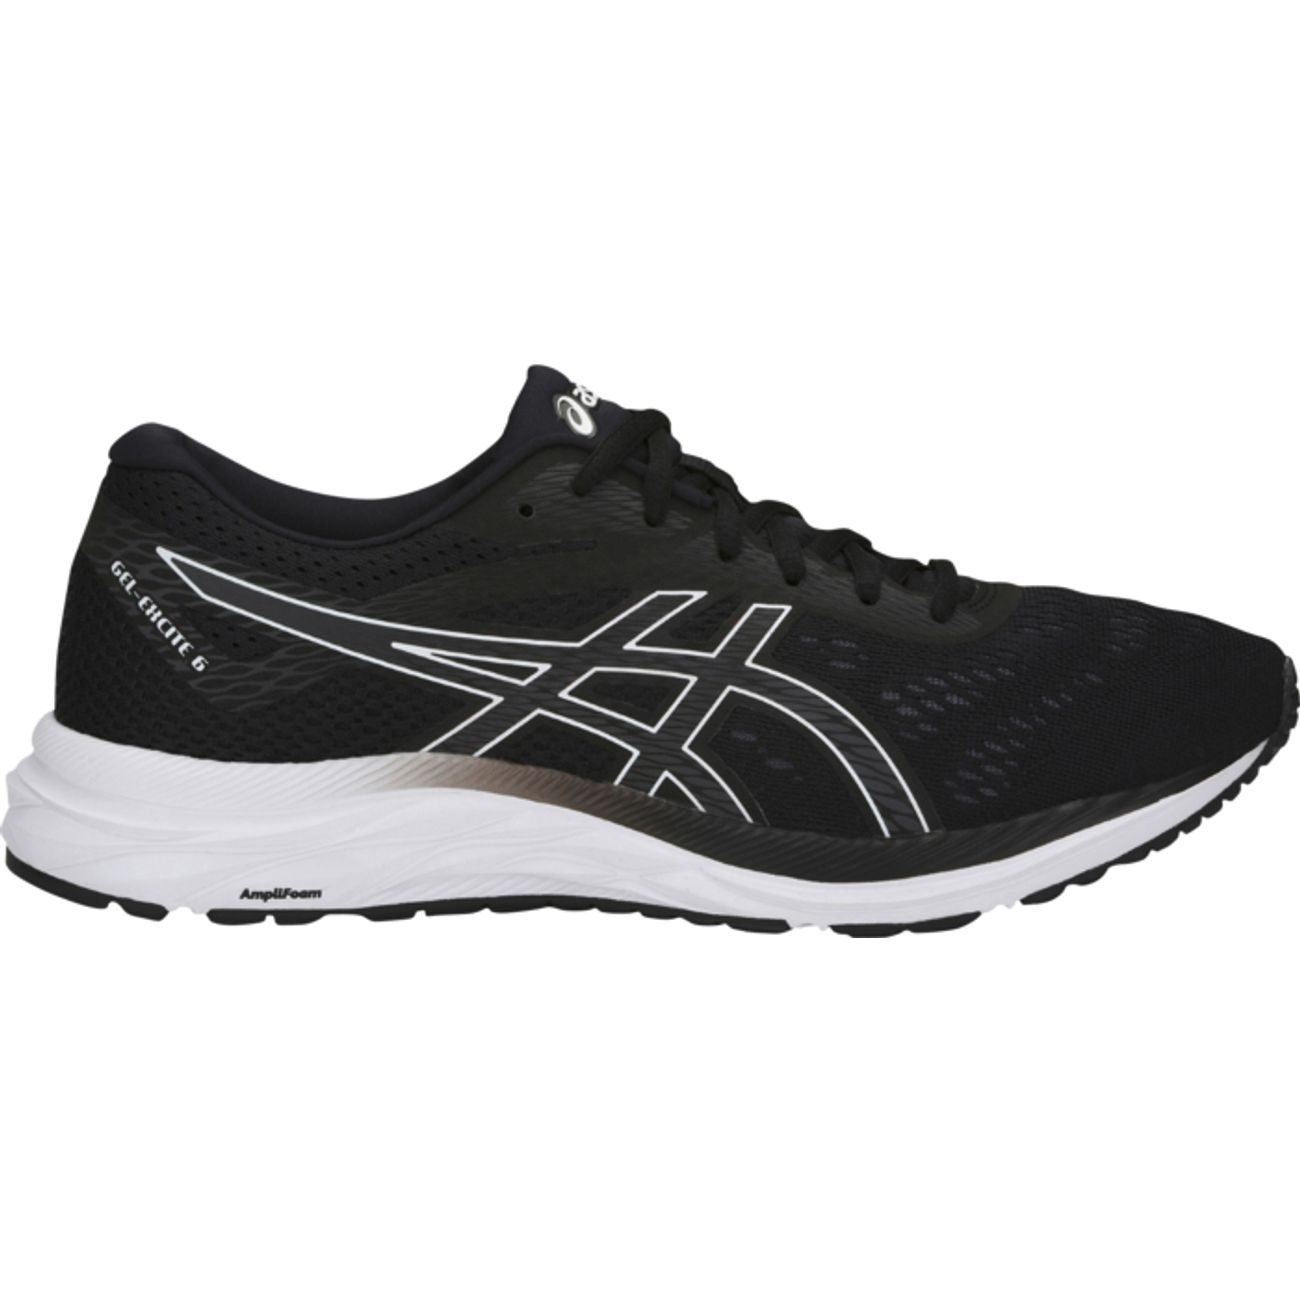 Homme excite 6 Chaussures Gel Asics Basses Running dCxoBre